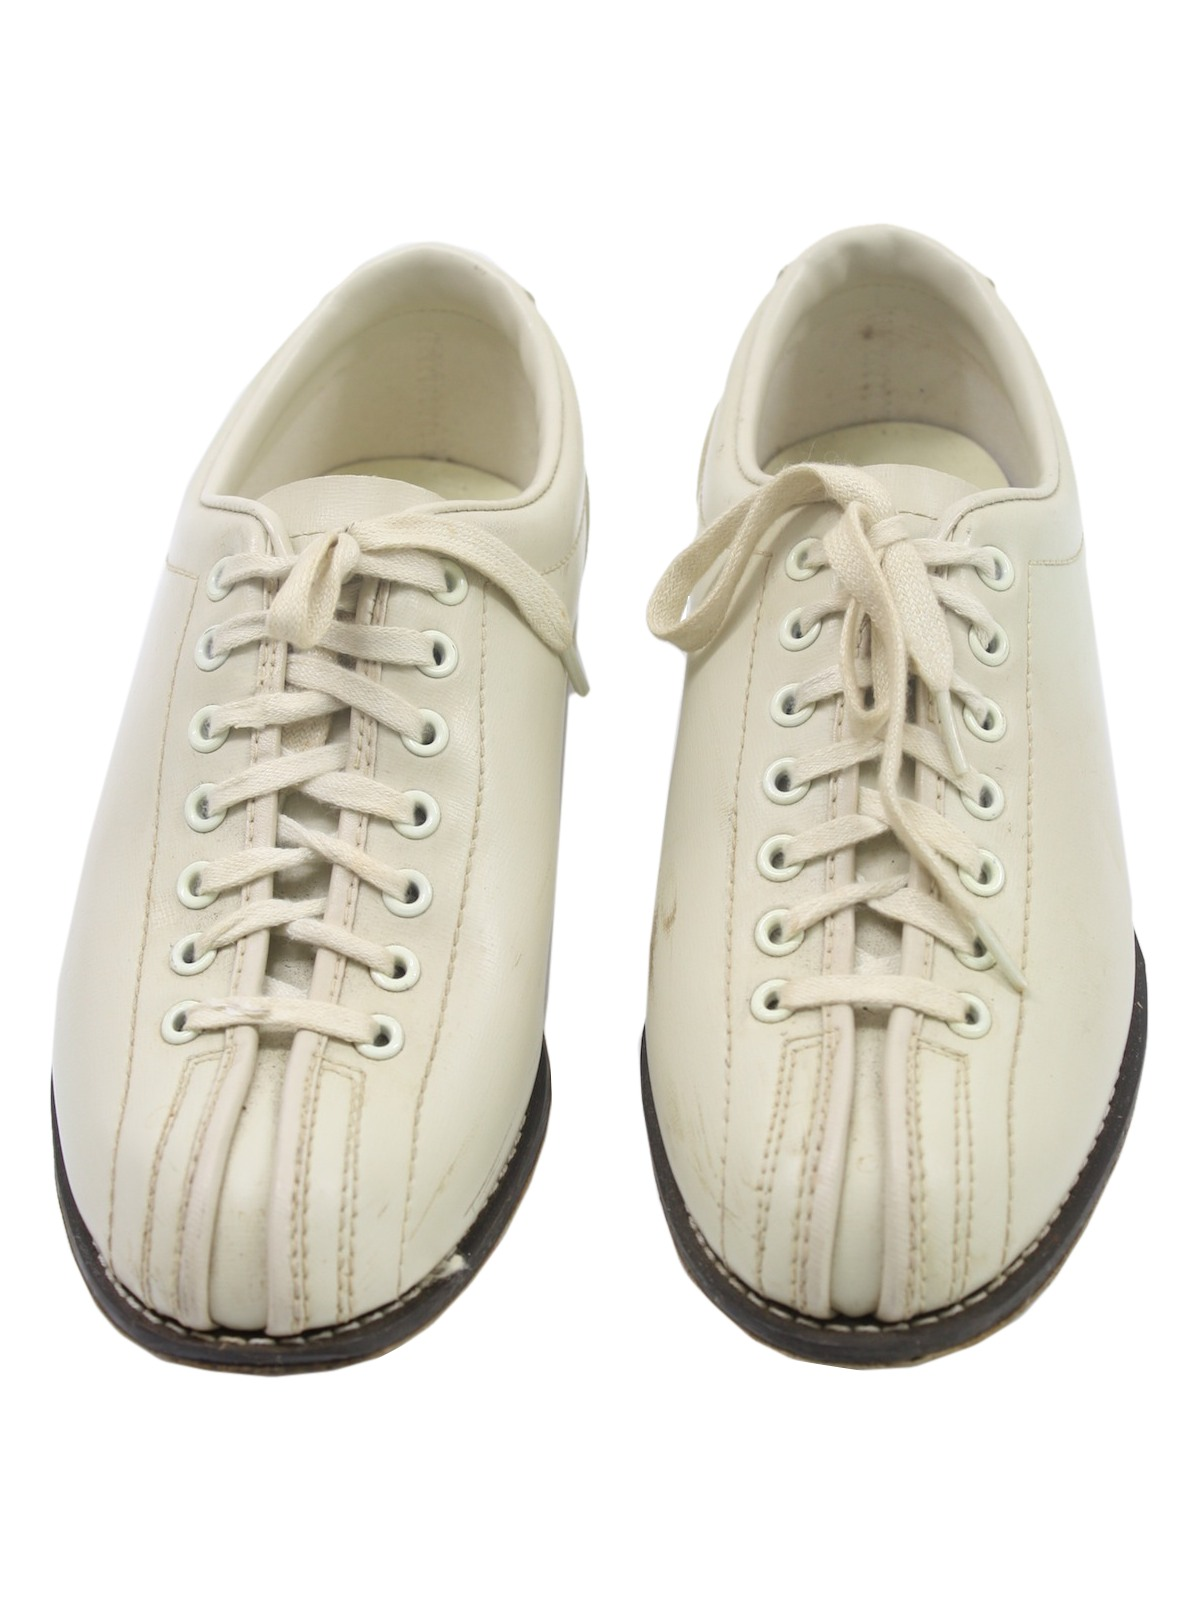 Vintage Bowling Shoes For Sale Mm